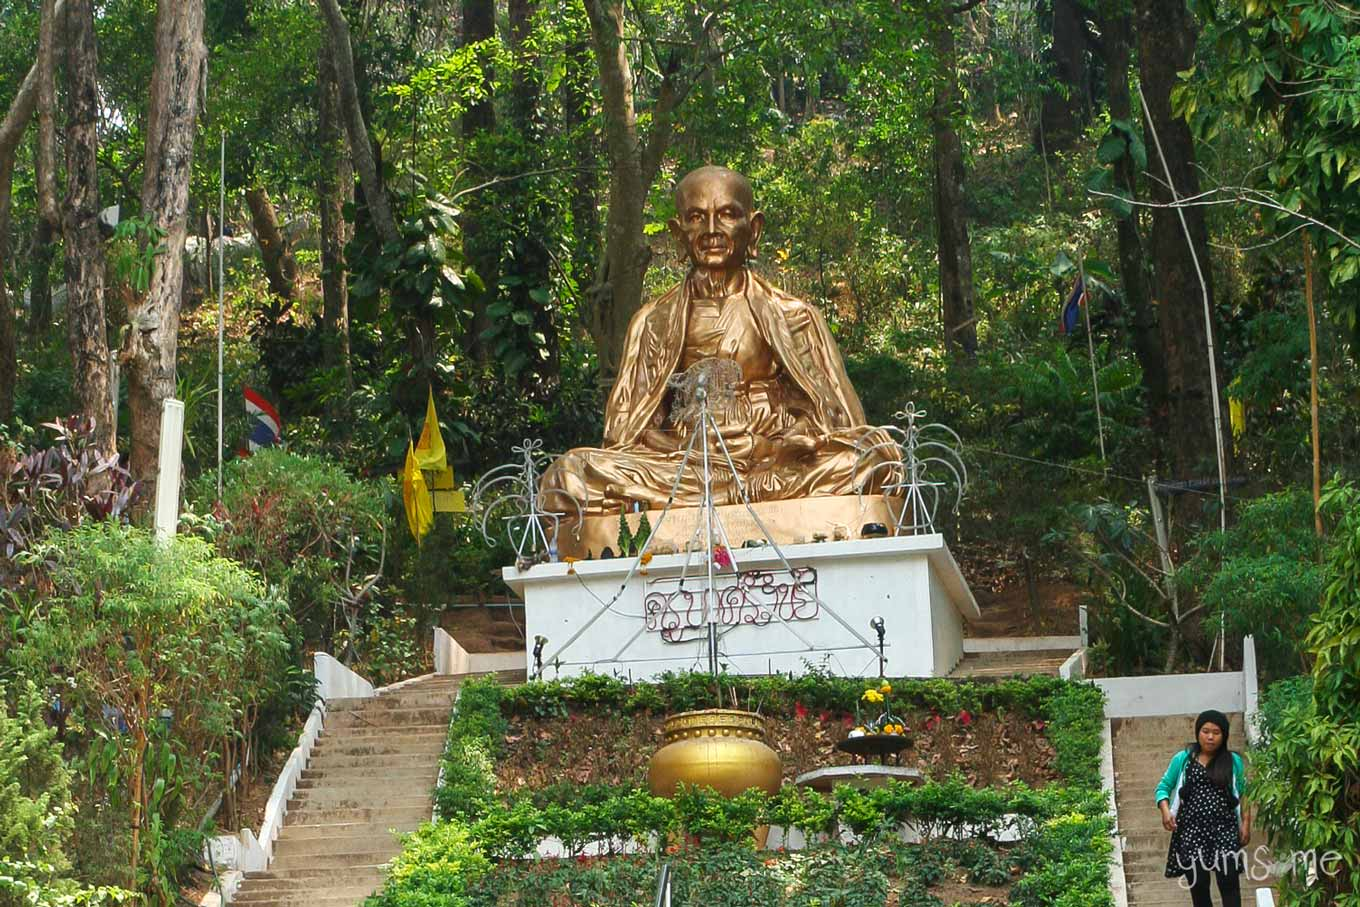 The Khruba Sri Vichai statue among the trees at Wat Doi Suthep.